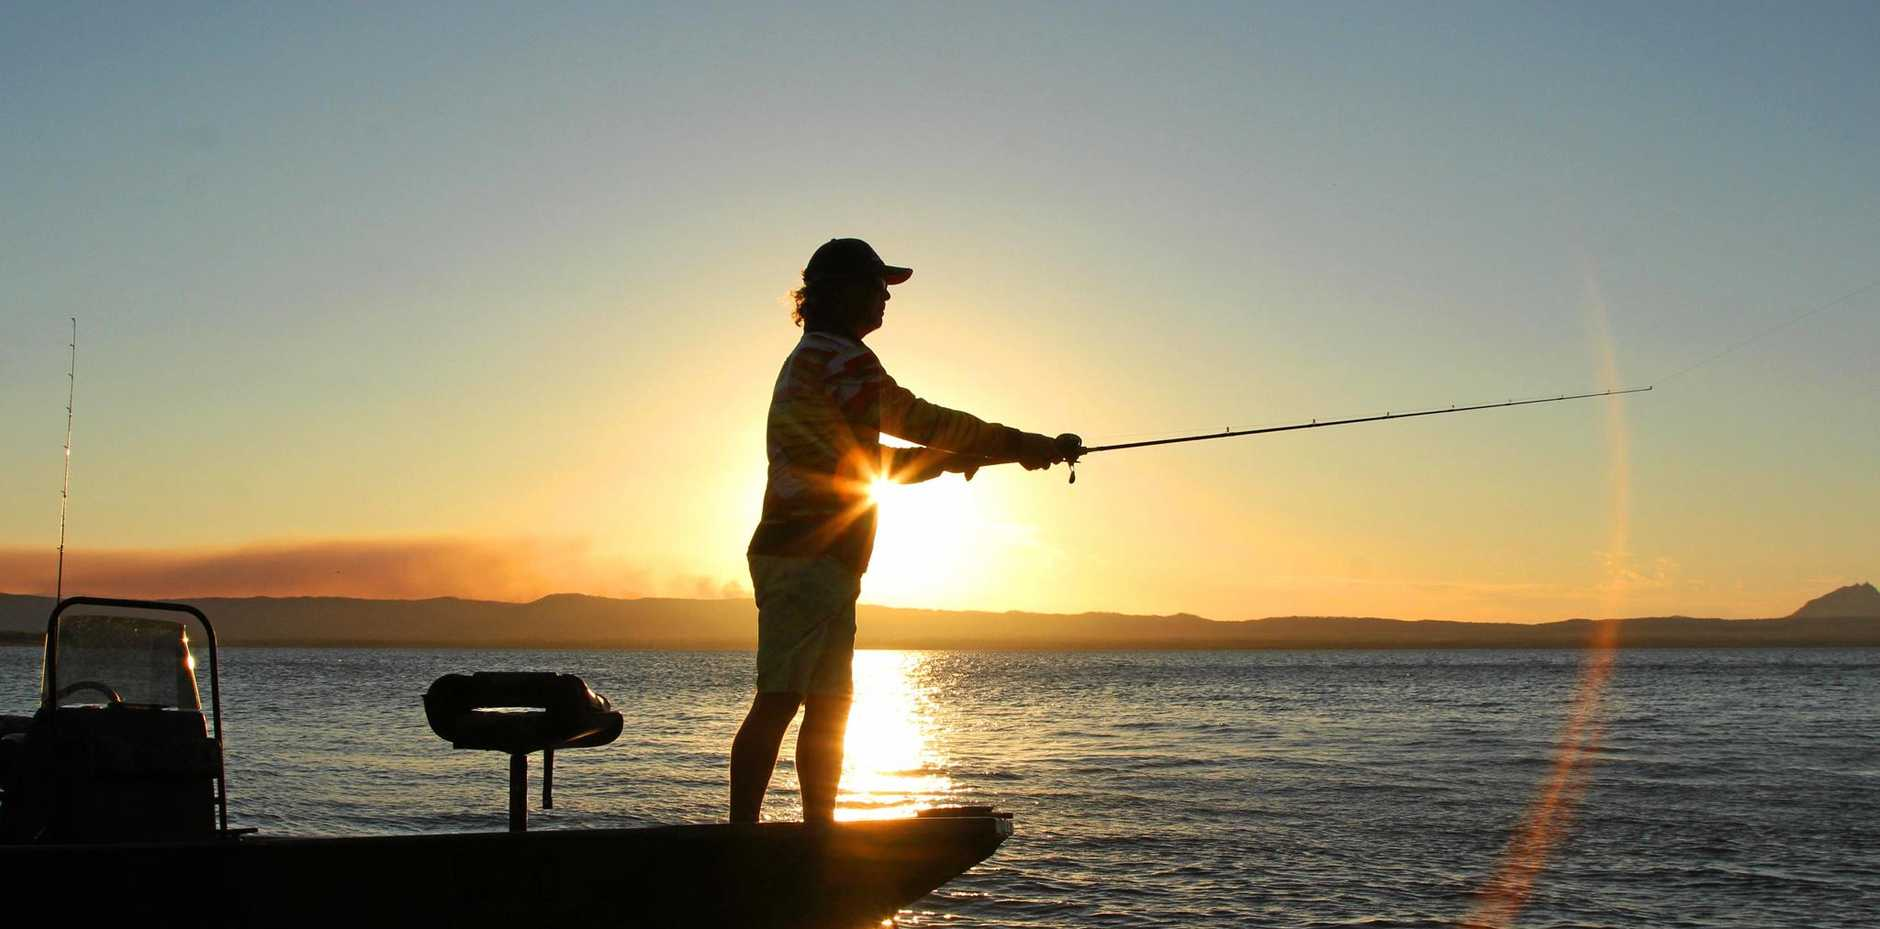 REELING 'EM IN: Competitors in the Australian Fishing Championships wet a line at Lake Proserpine on Monday. The series has now moved on to Eungella Dam.